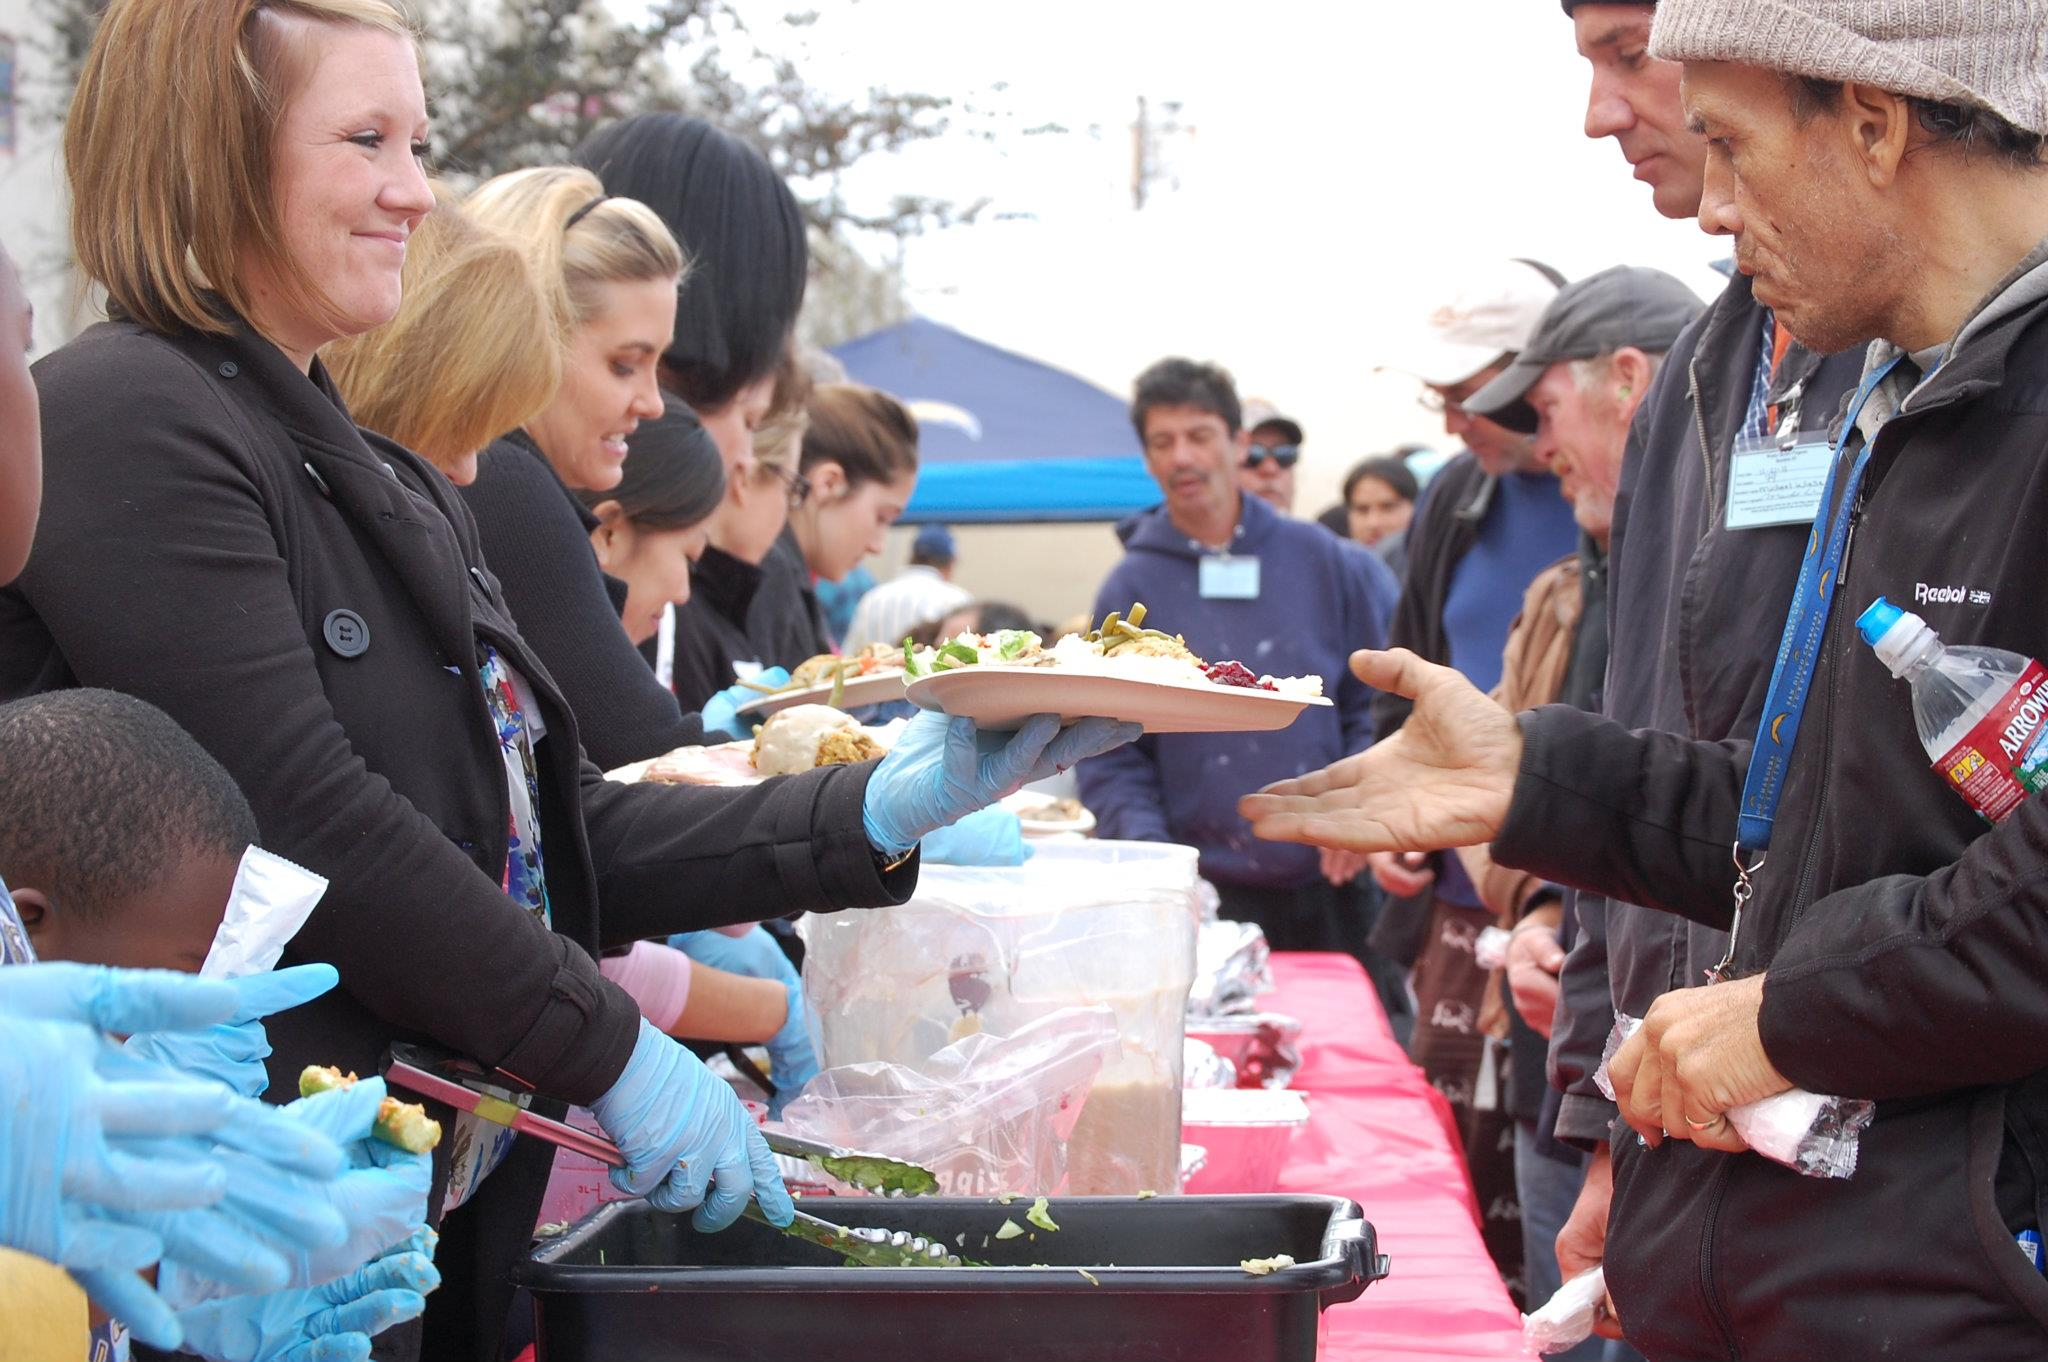 help with essay about volunteering to feed the hungry Comments off on help the homeless, so we can all does volunteering at a local homeless shelter actually enable a person if people are hungry, we must feed.